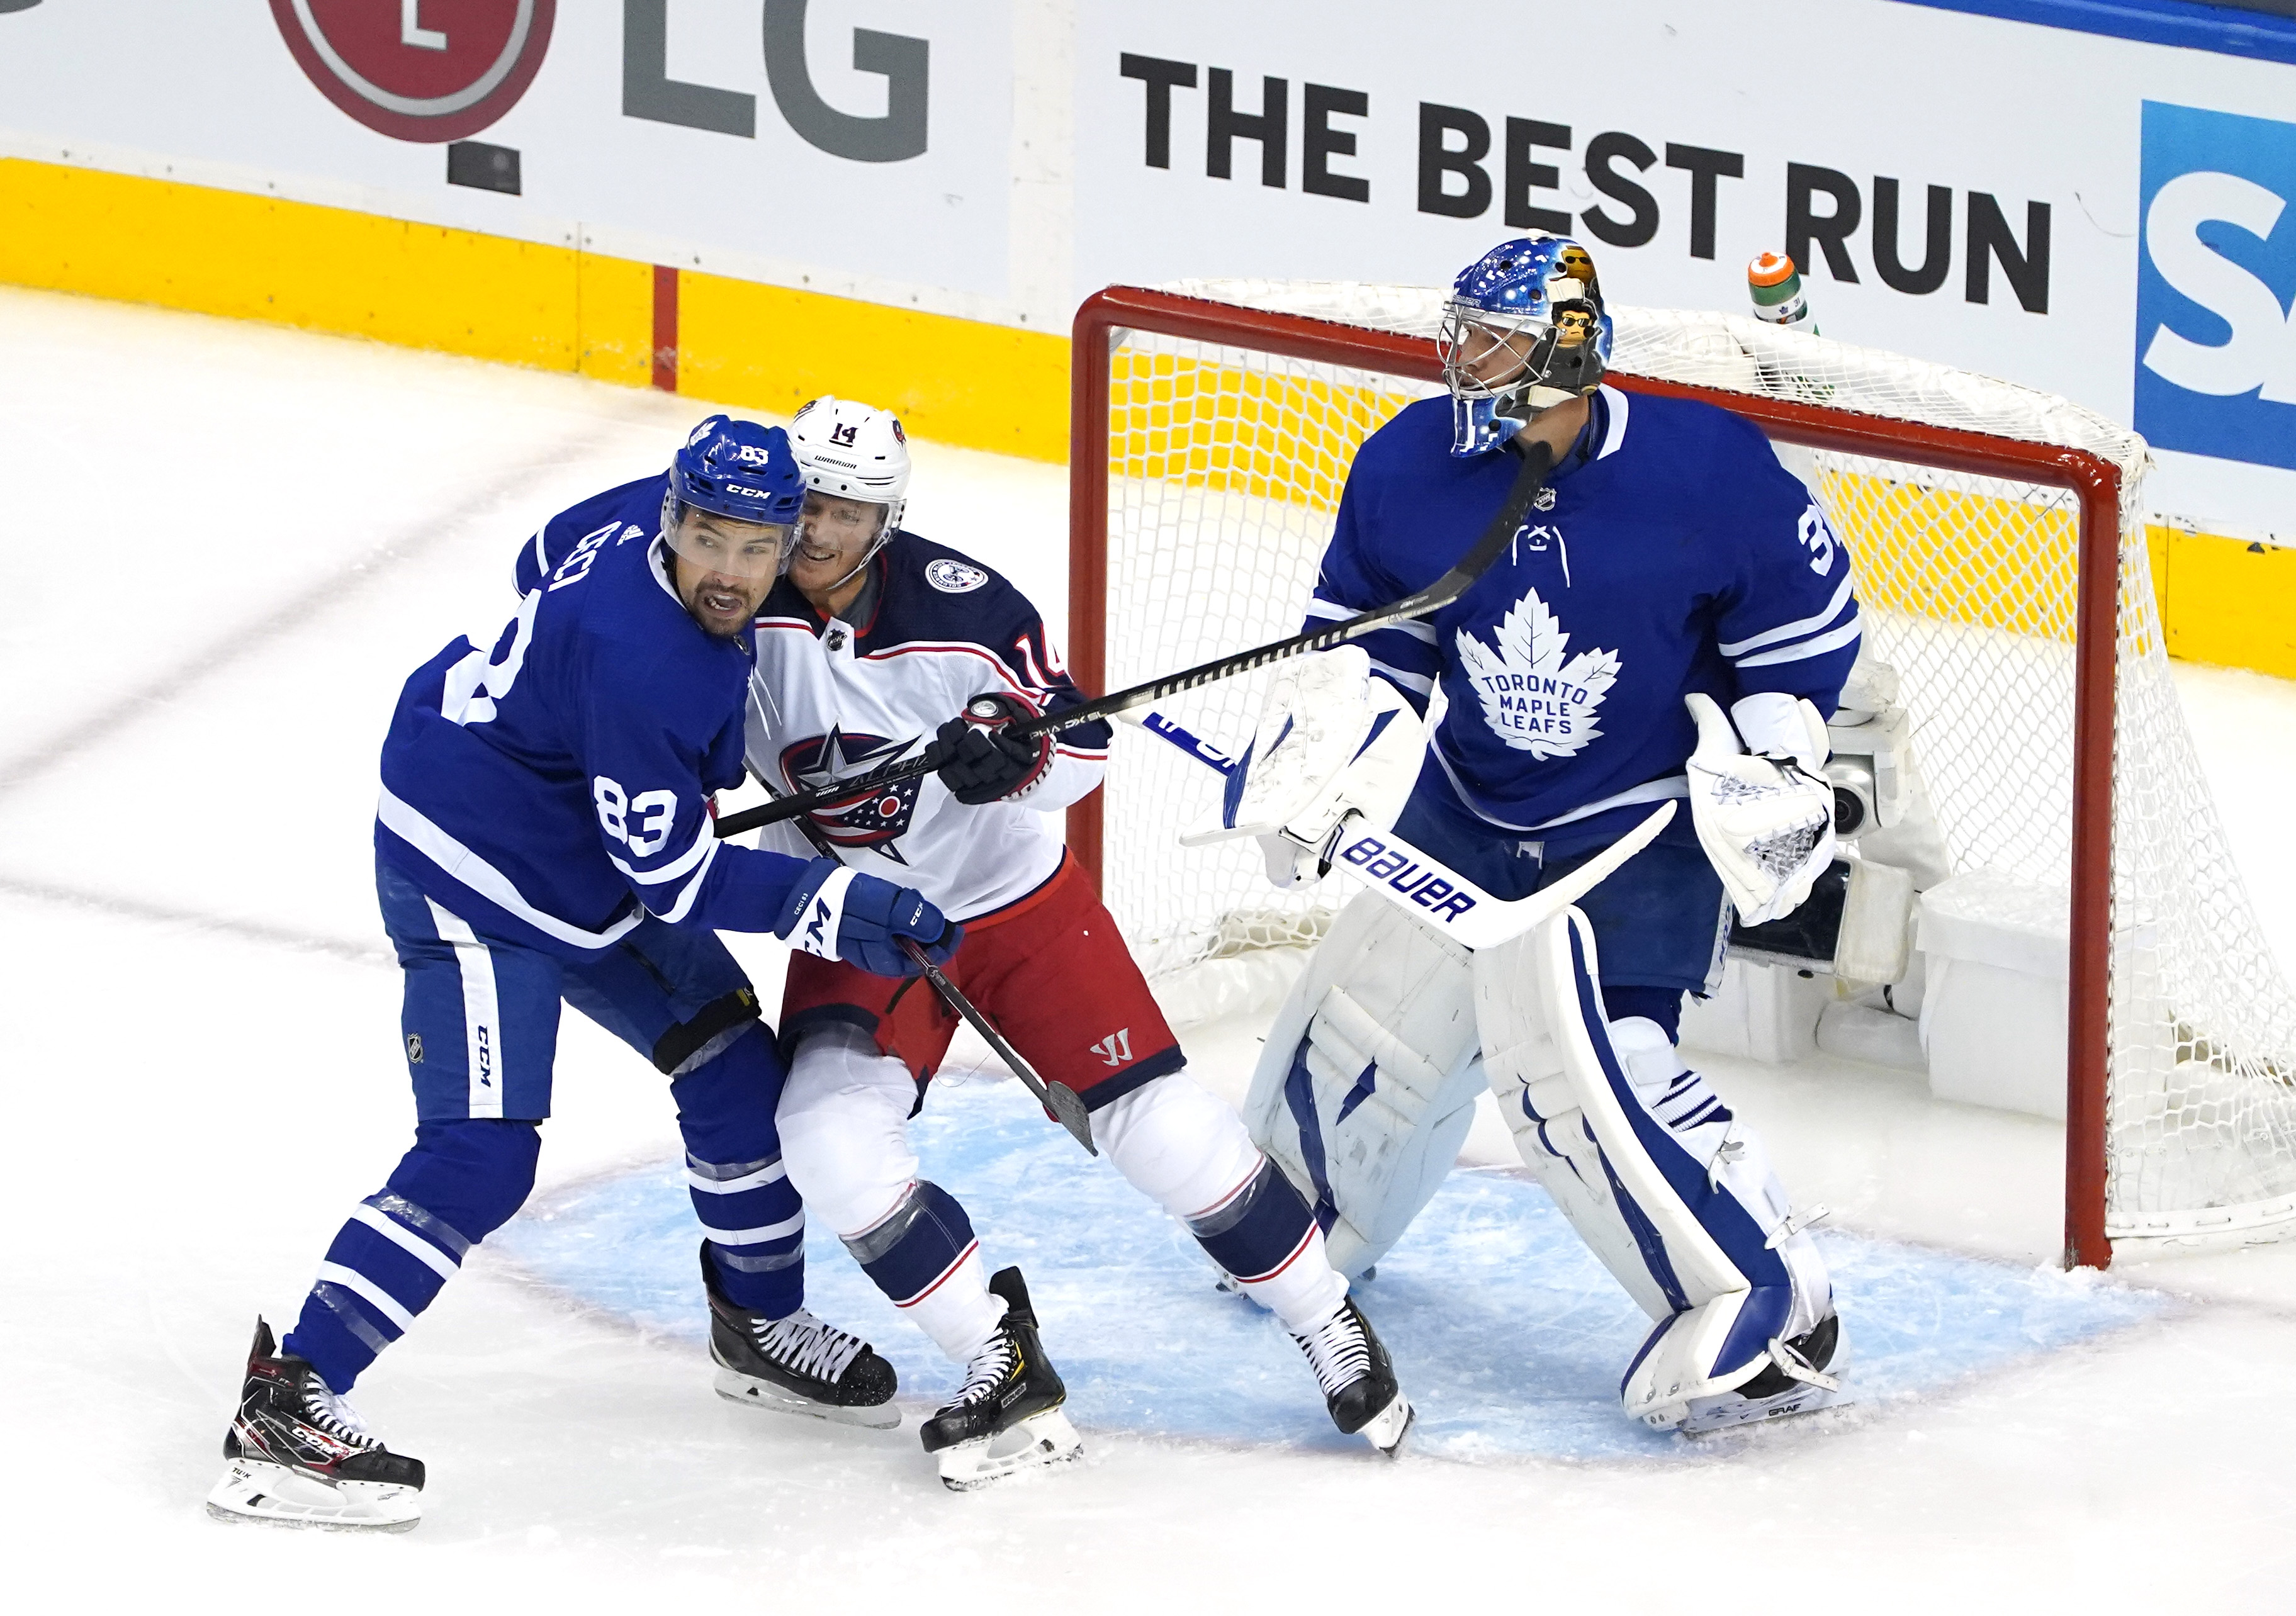 Toronto Maple Leafs Vs Columbus Blue Jackets Free Live Stream 8 4 20 How To Watch Nhl Qualifying Round Time Channel Pennlive Com